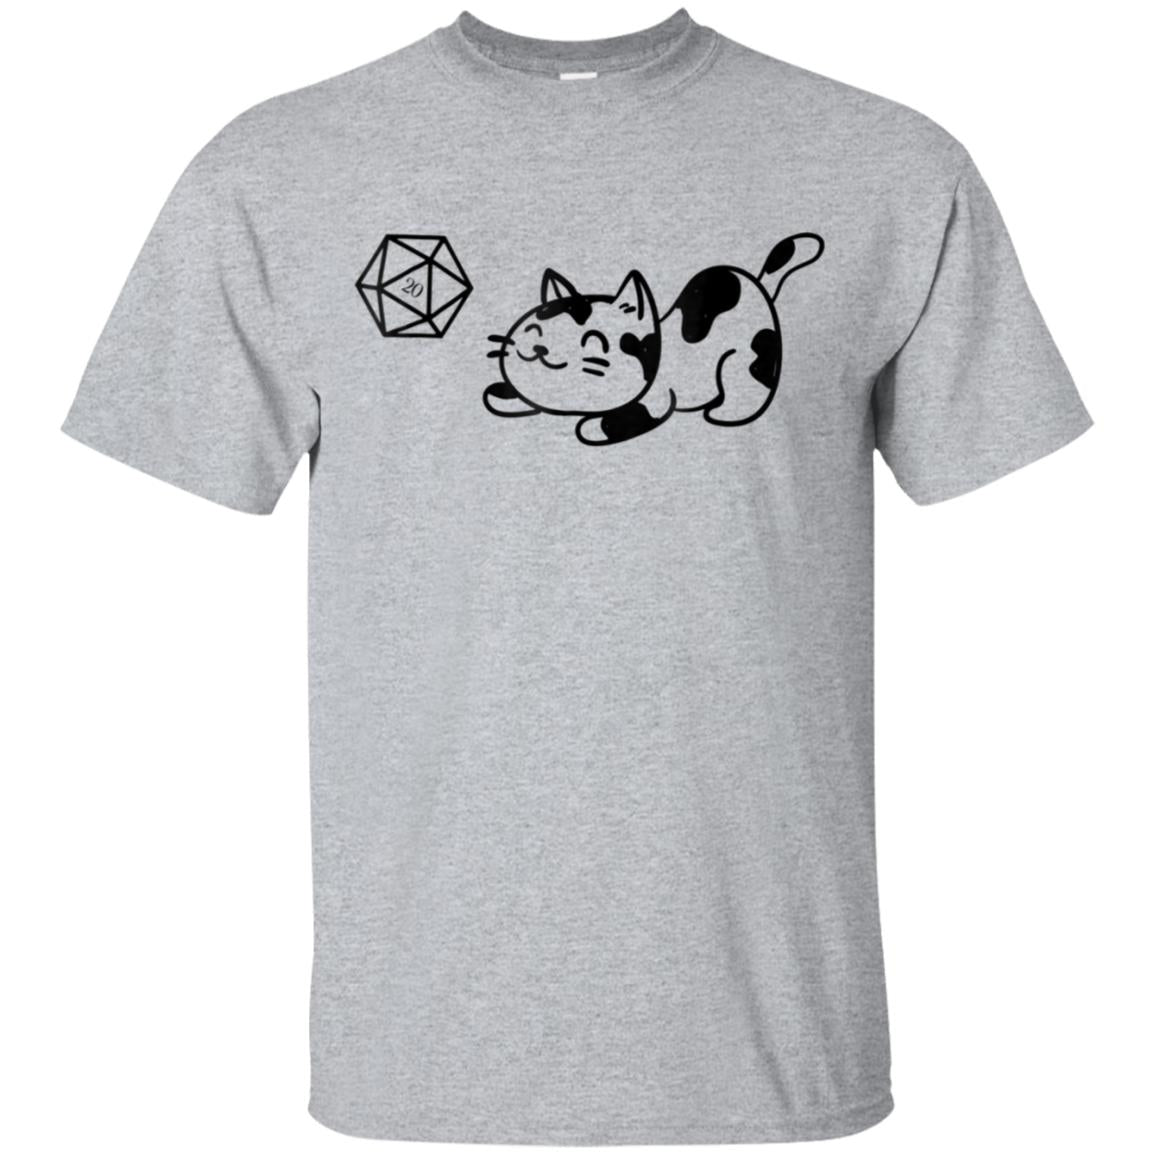 Nerdy Cat with D20 Dice for Cat Lovers Geeky T-Shirt 99promocode